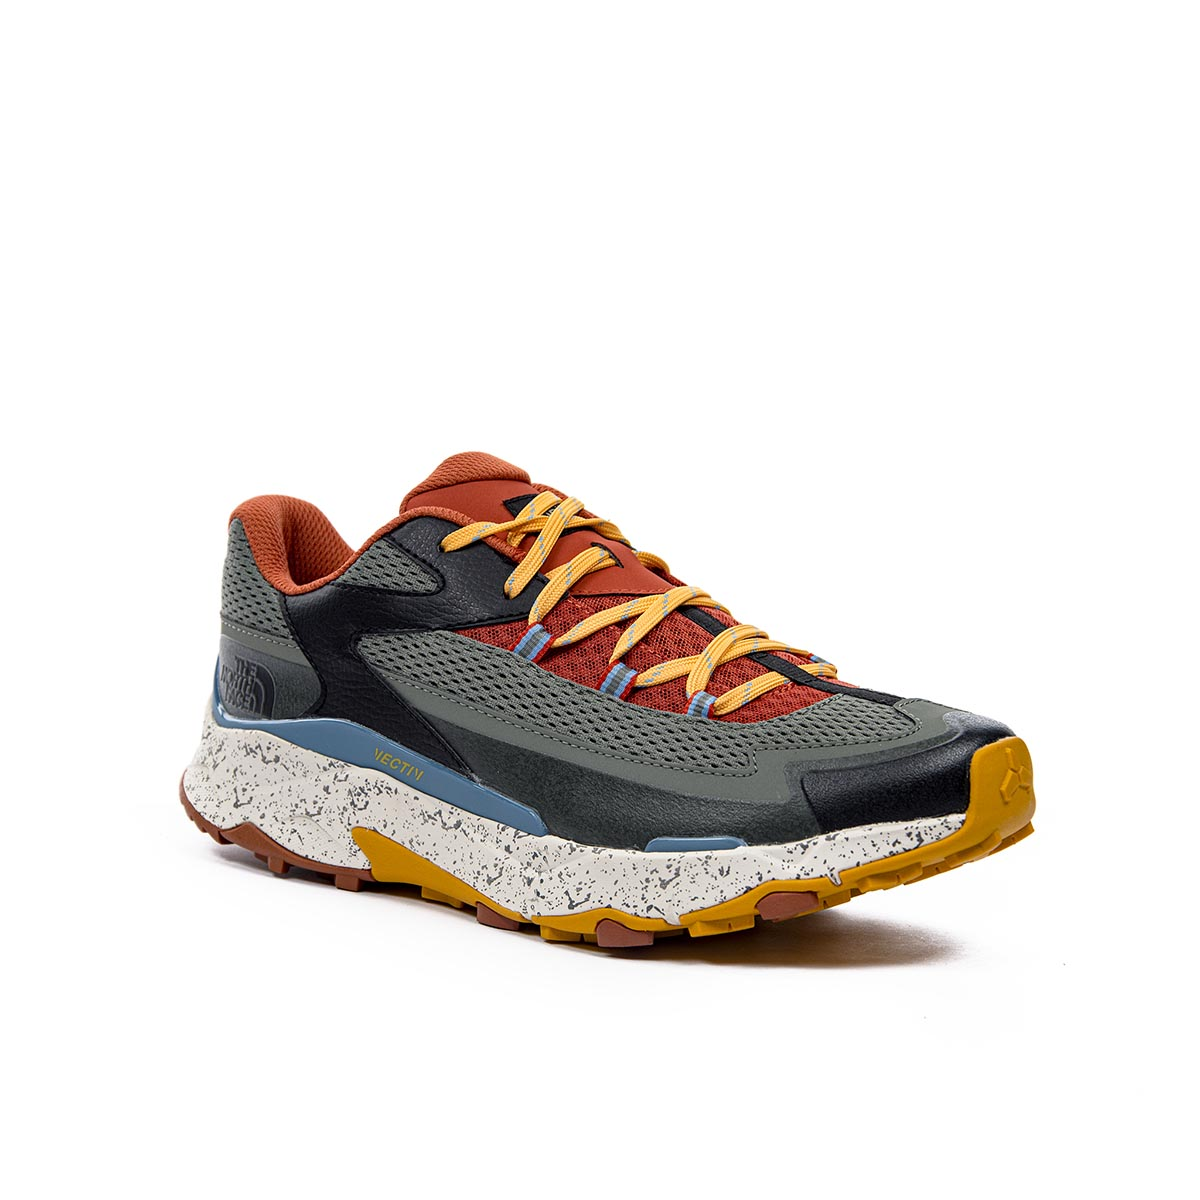 THE NORTH FACE - VECTIV TARAVAL SHOES